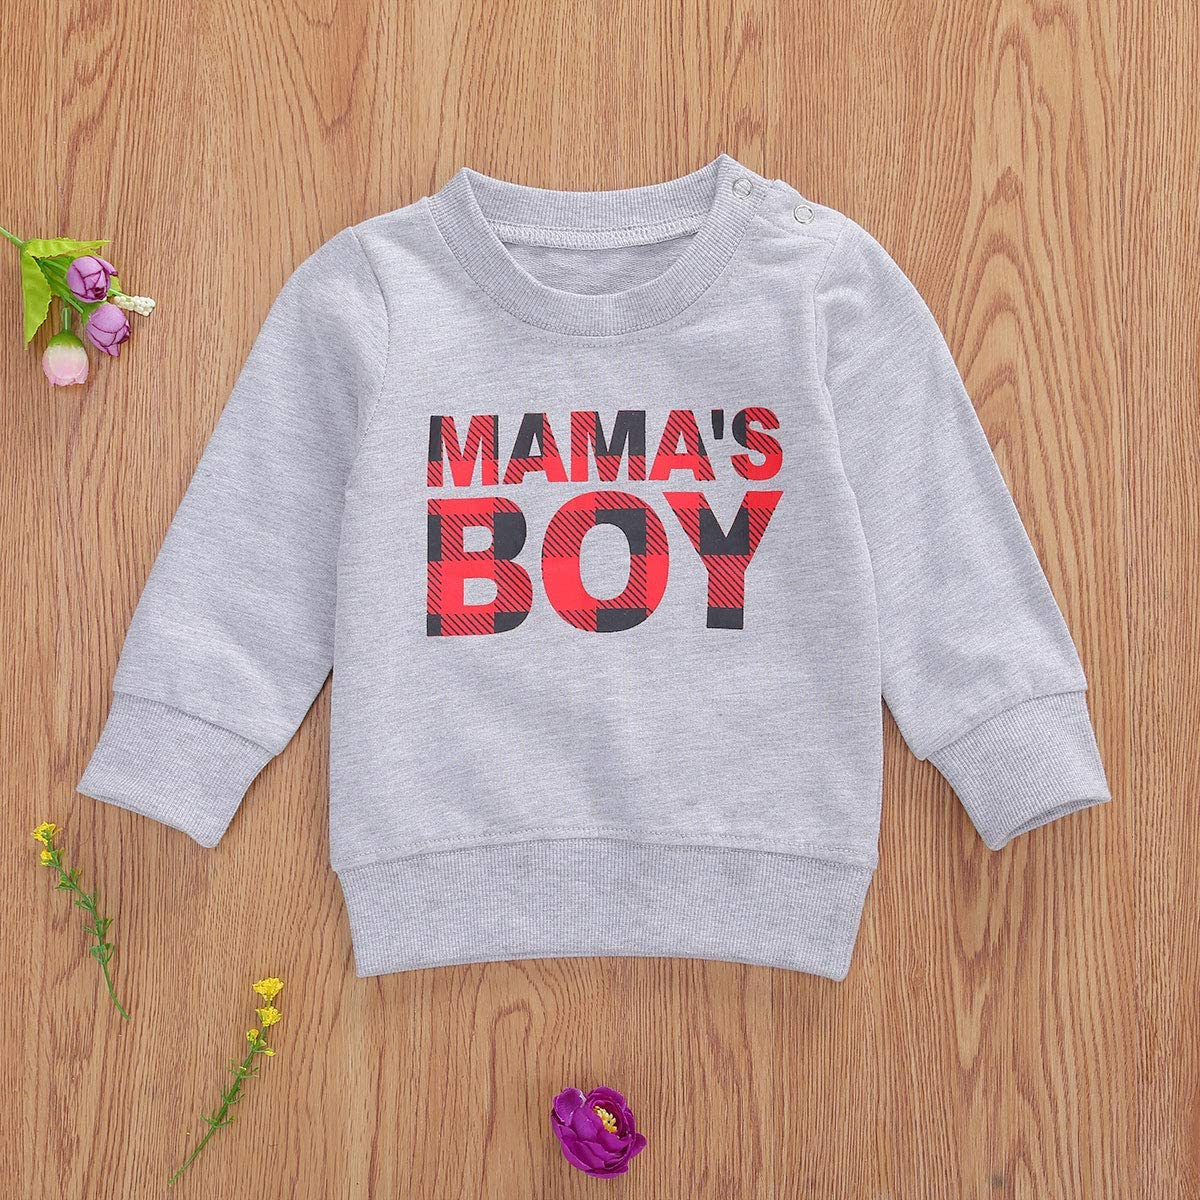 Toddler Baby Boys Sweatshirt Mama is My Bestie Pullover Top Long Sleeve Letters Shirt Blouse Fall Winter Clothes (C-White, 18-24 Months)